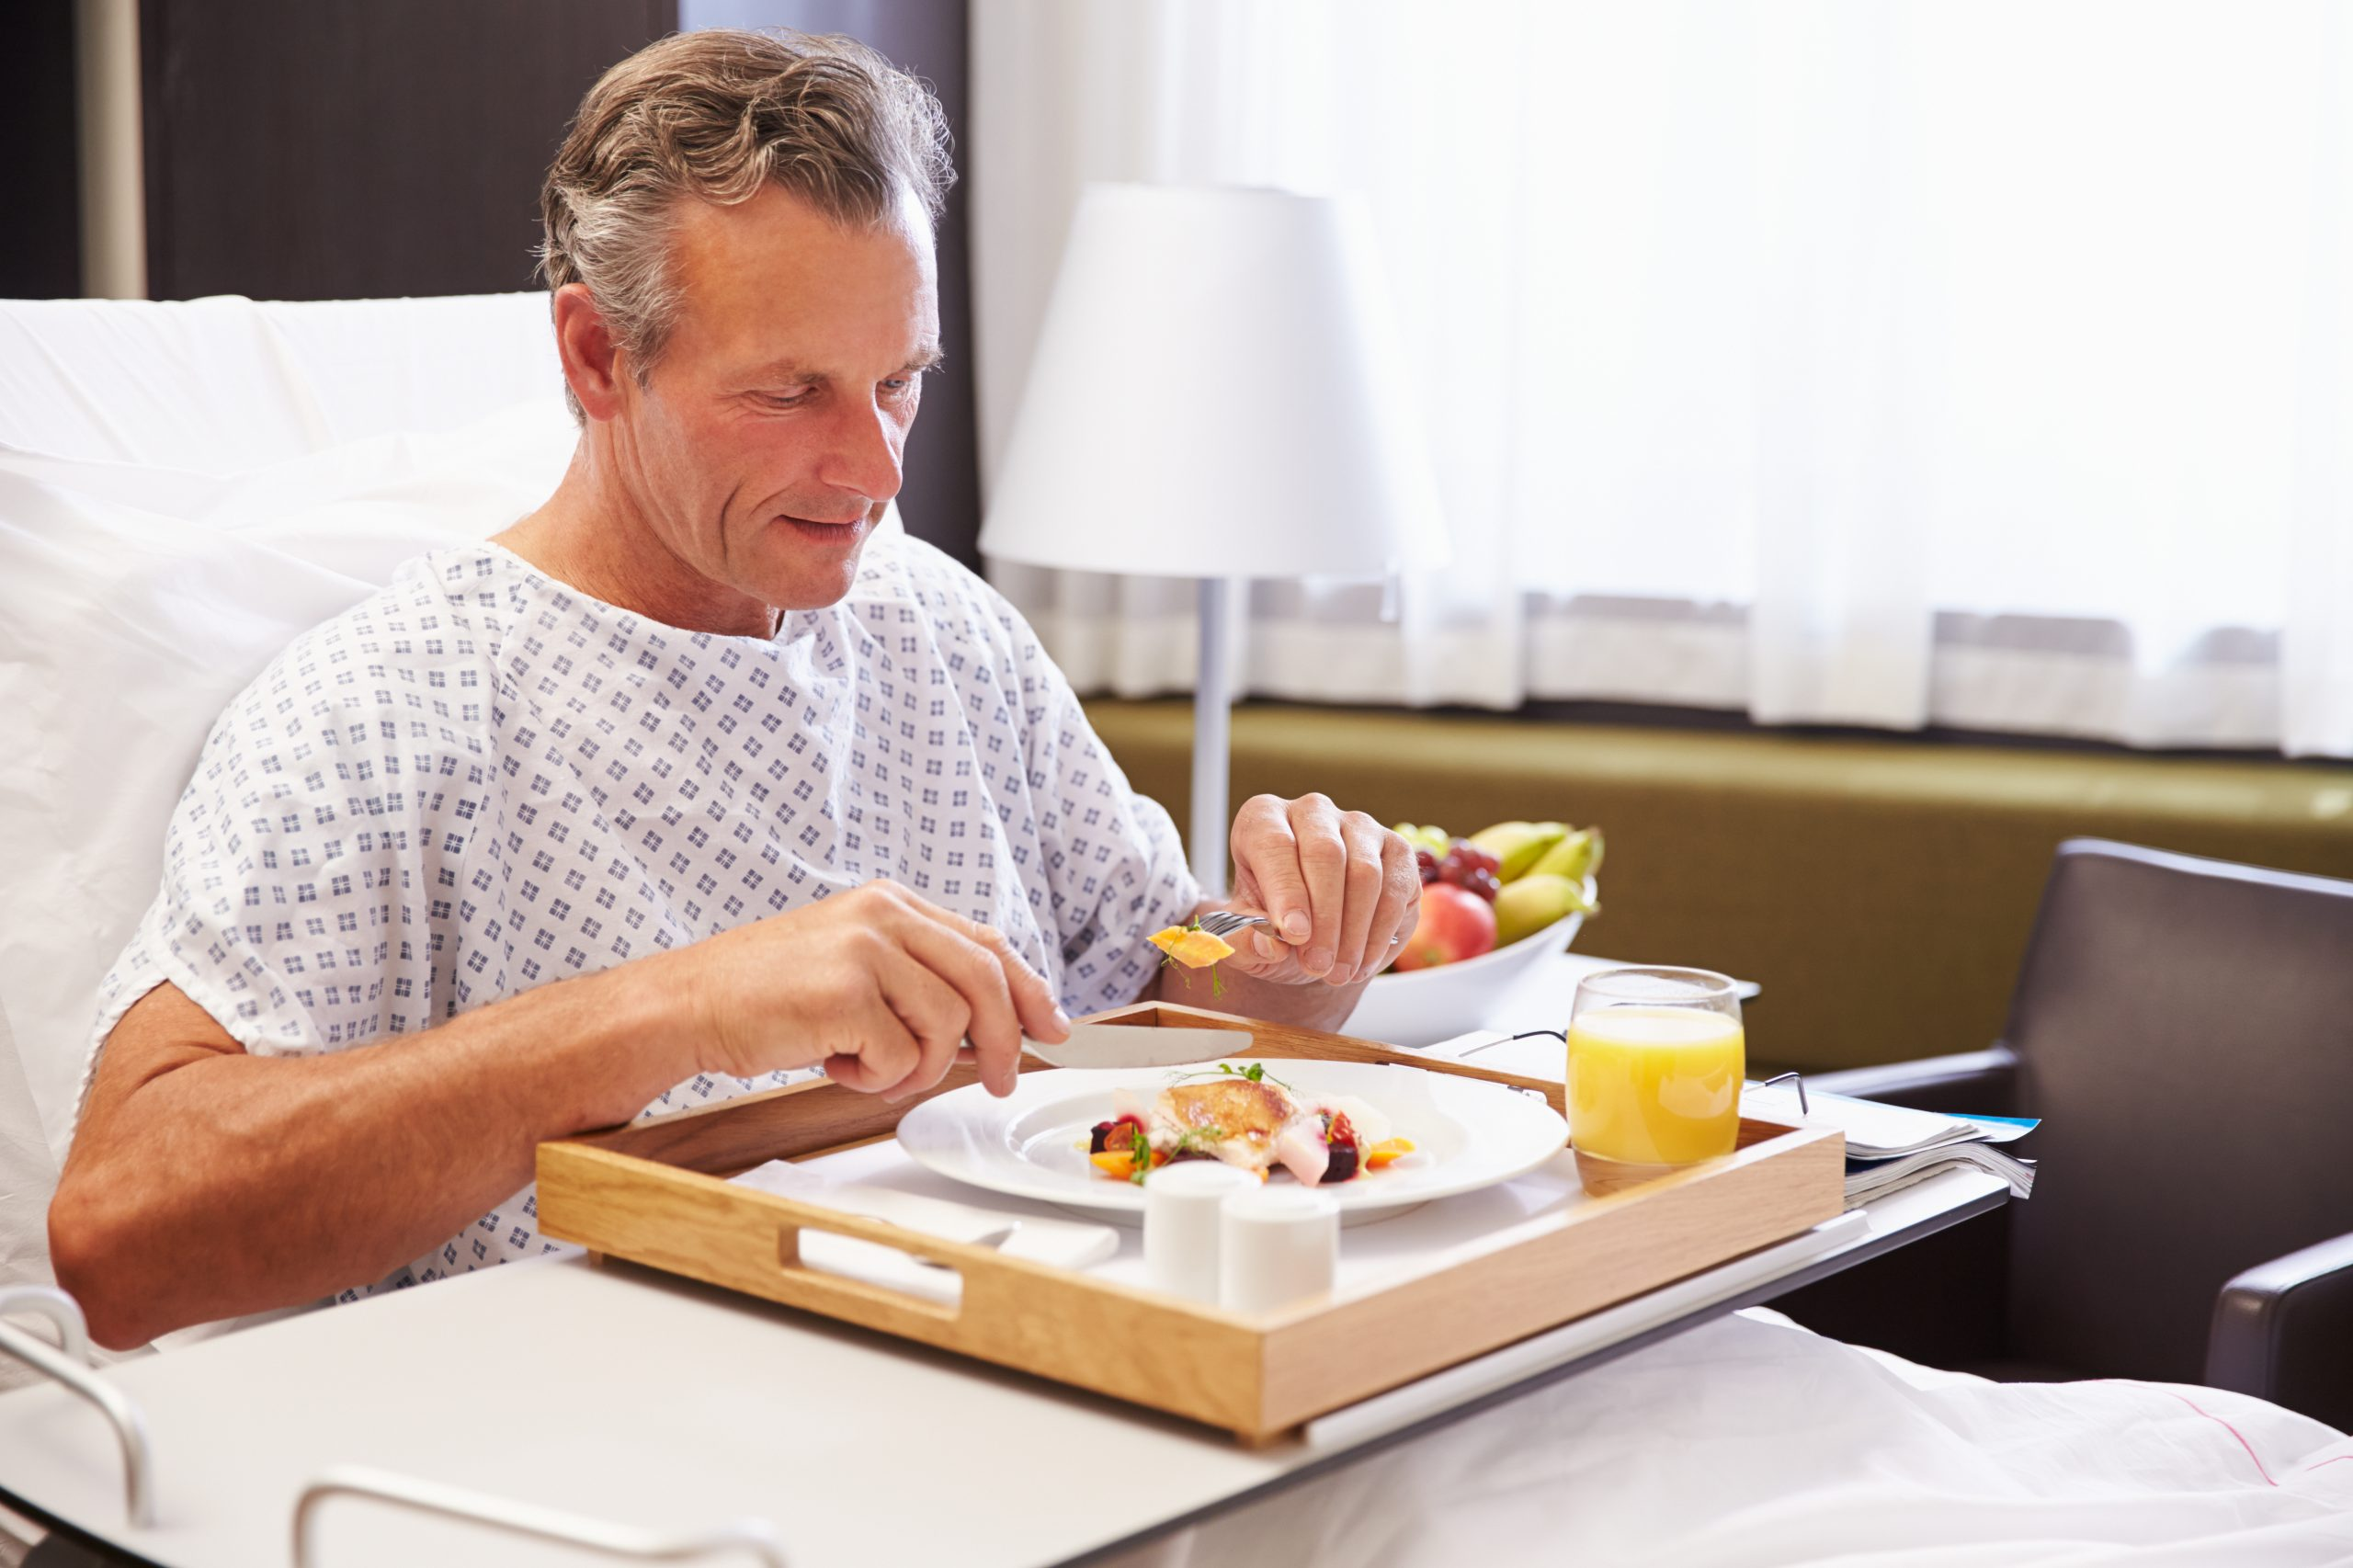 Man in Hospital Bed Eating